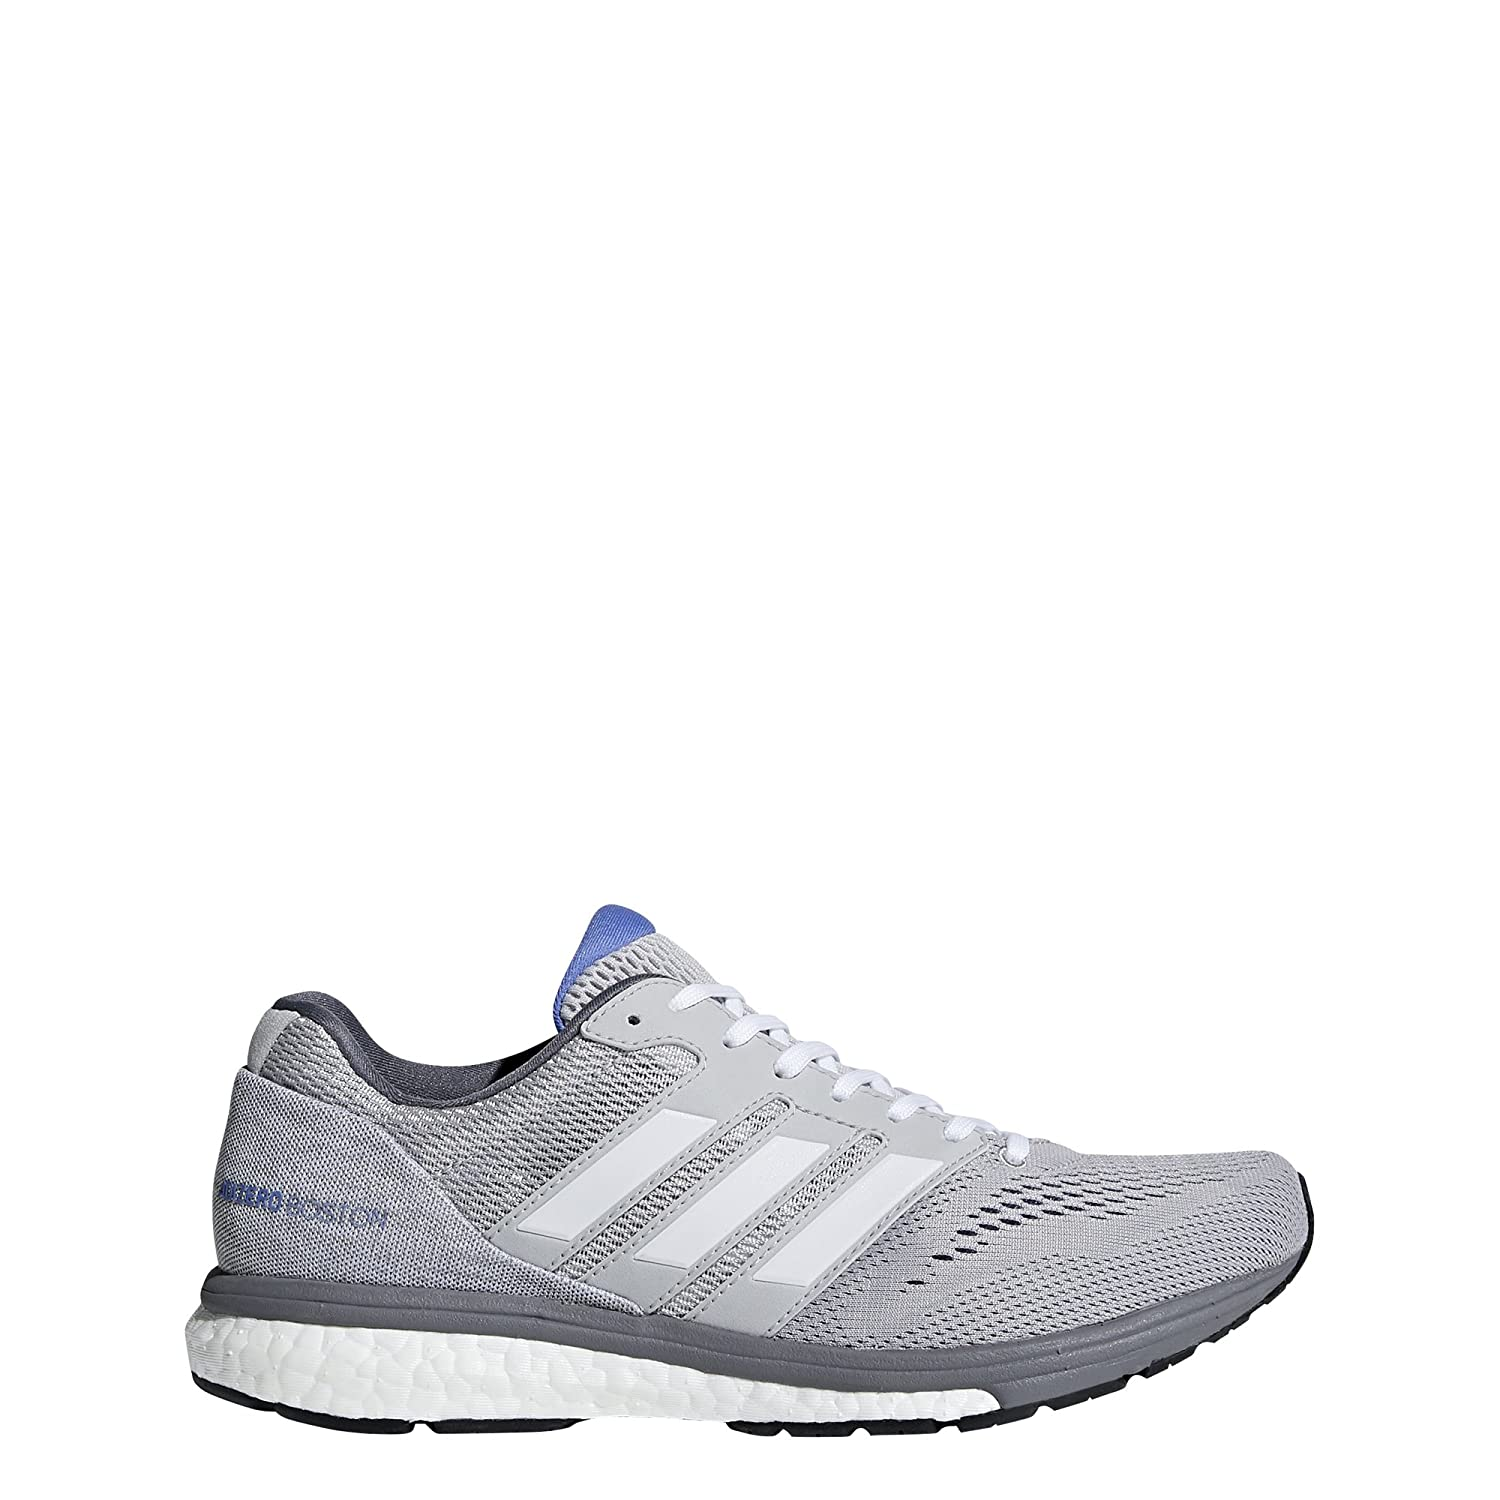 adidas Women's Adizero Boston 7 Running Shoe B077XKPQ9N 7.5 M US|Grey/White/Grey